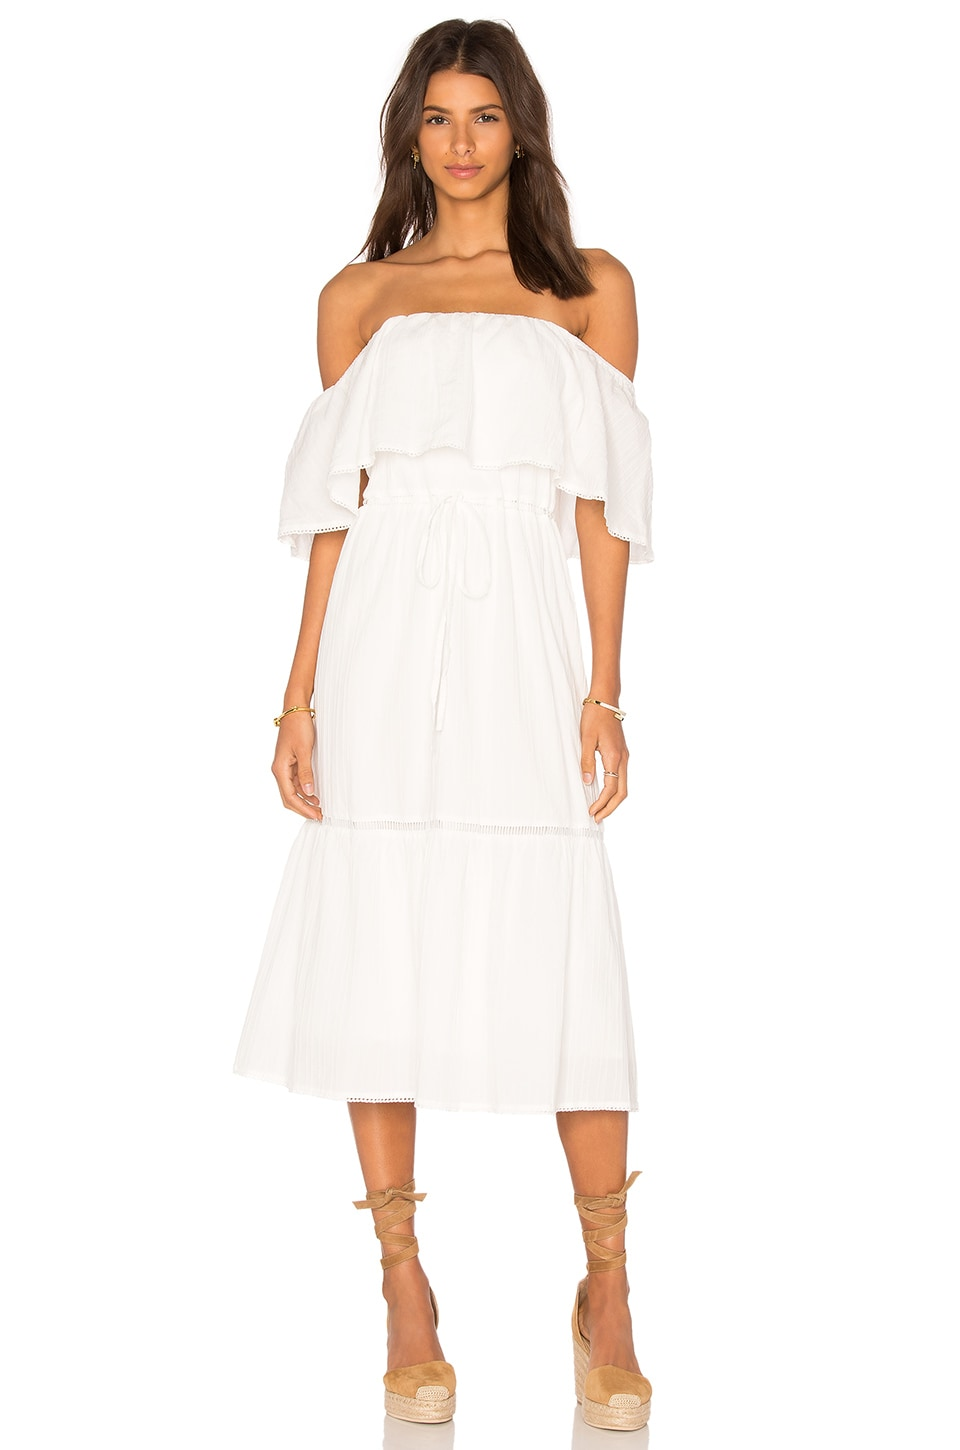 Lucy Paris Senorita Bonita Dress in White